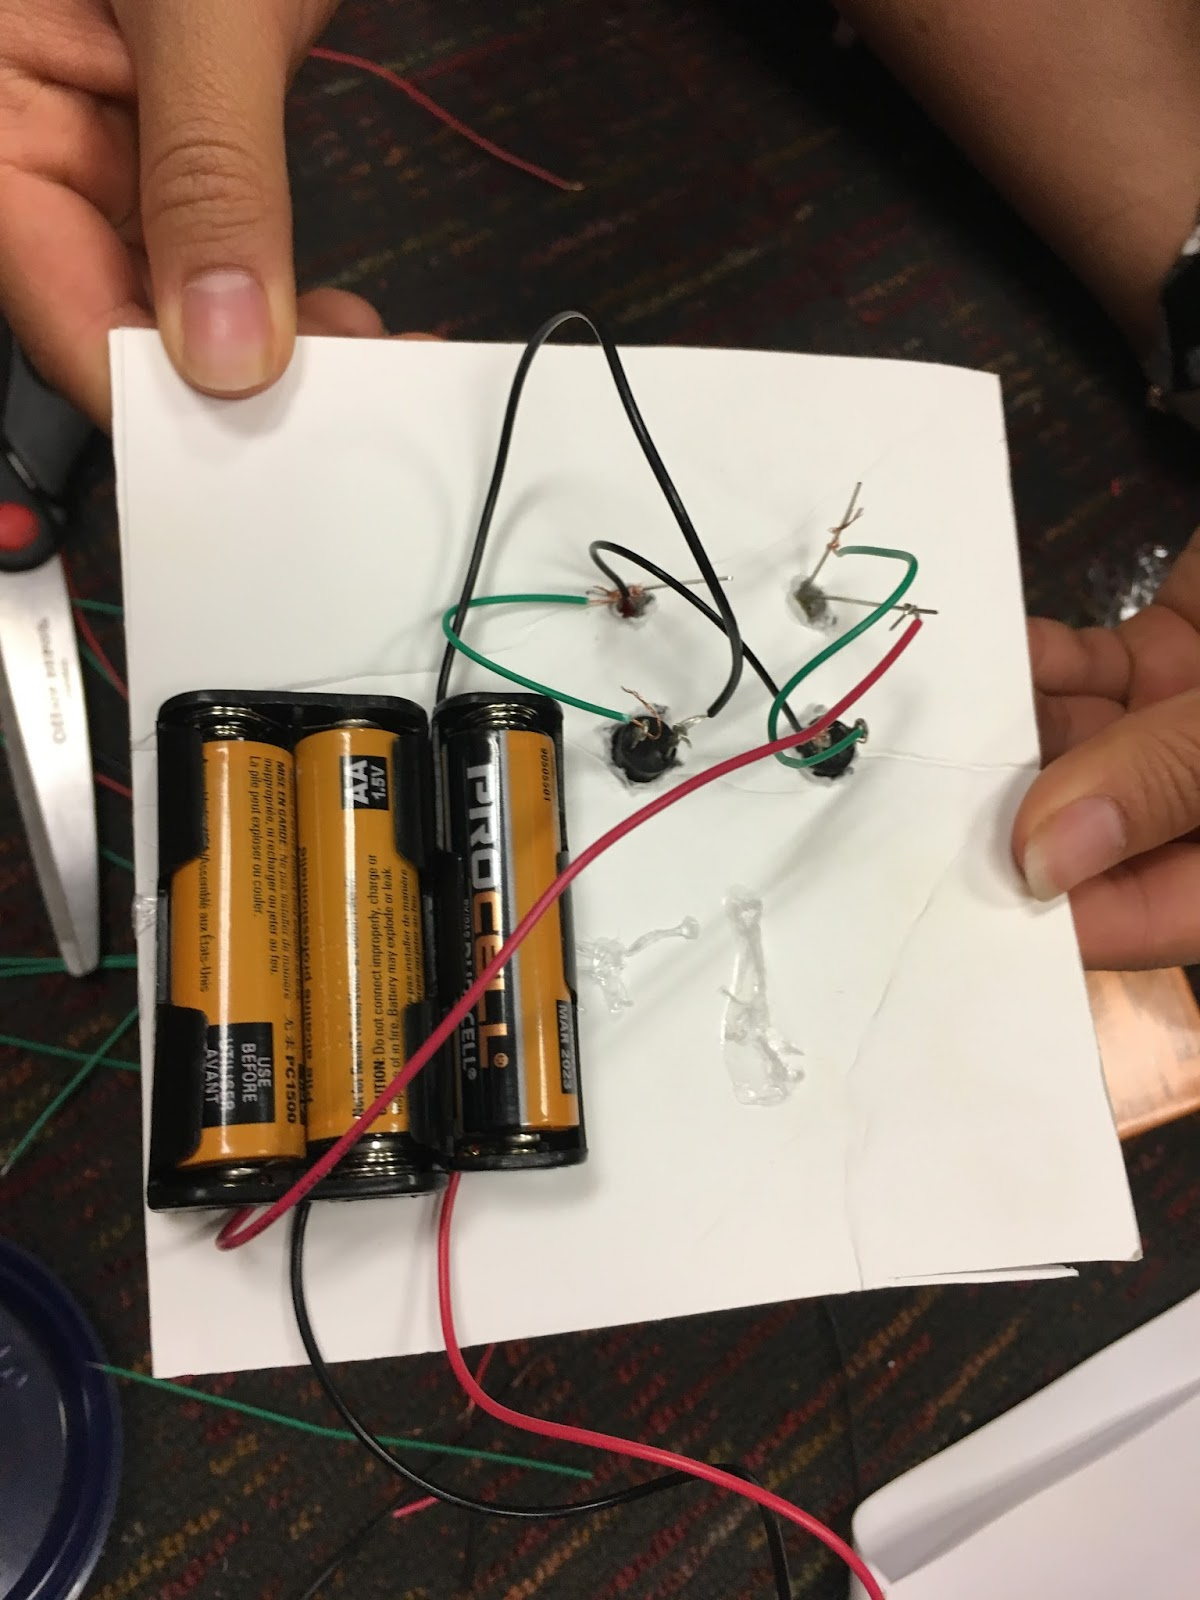 Logic Circuits 2017 Group 4 Usc Viterbi K 12 Outreach Wiring A Parallel Circuit Combined We Both The Series And To Create New Design Used Two Switches One Controlling Each Led Light